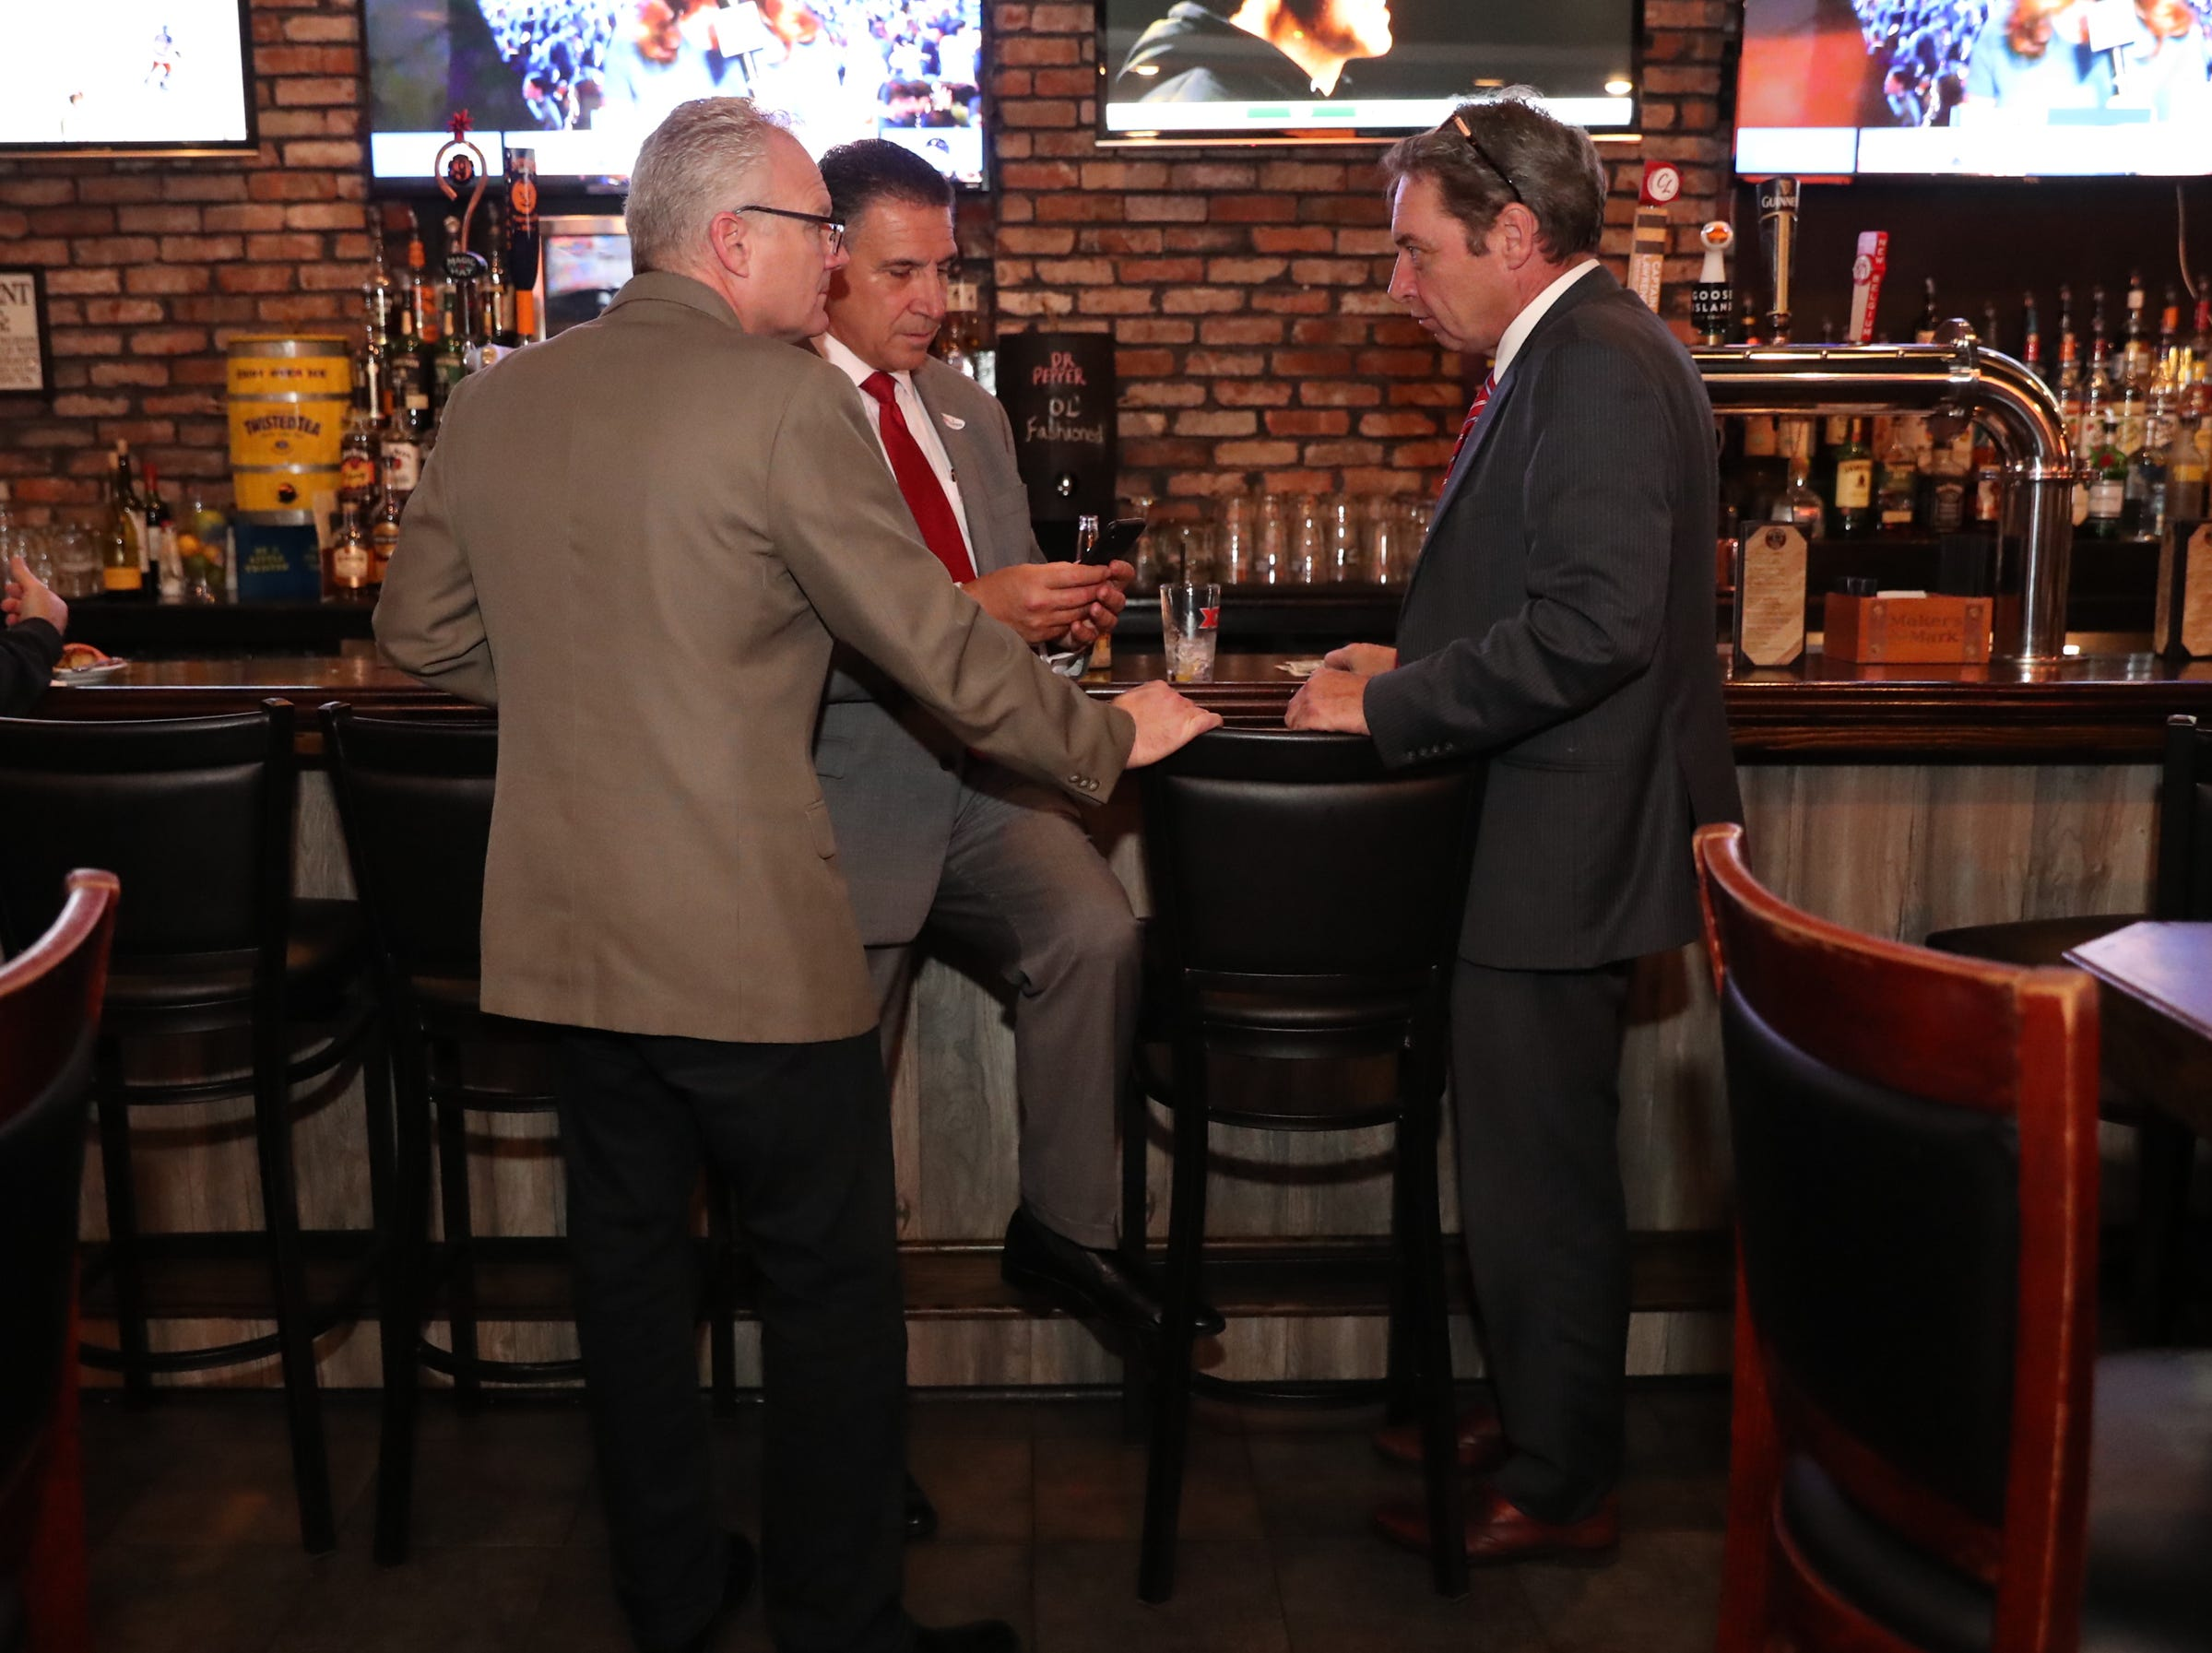 Scott Milich, left, Rockland County Legislator Lon Hofstein and Rocland County Rebublical commitee chairman Lawrence Garvey wait for election results at the Rockland Republican Commitee's election night gathering at Foggy Bottom Tavern in New City on Tuesday, November 6, 2018.